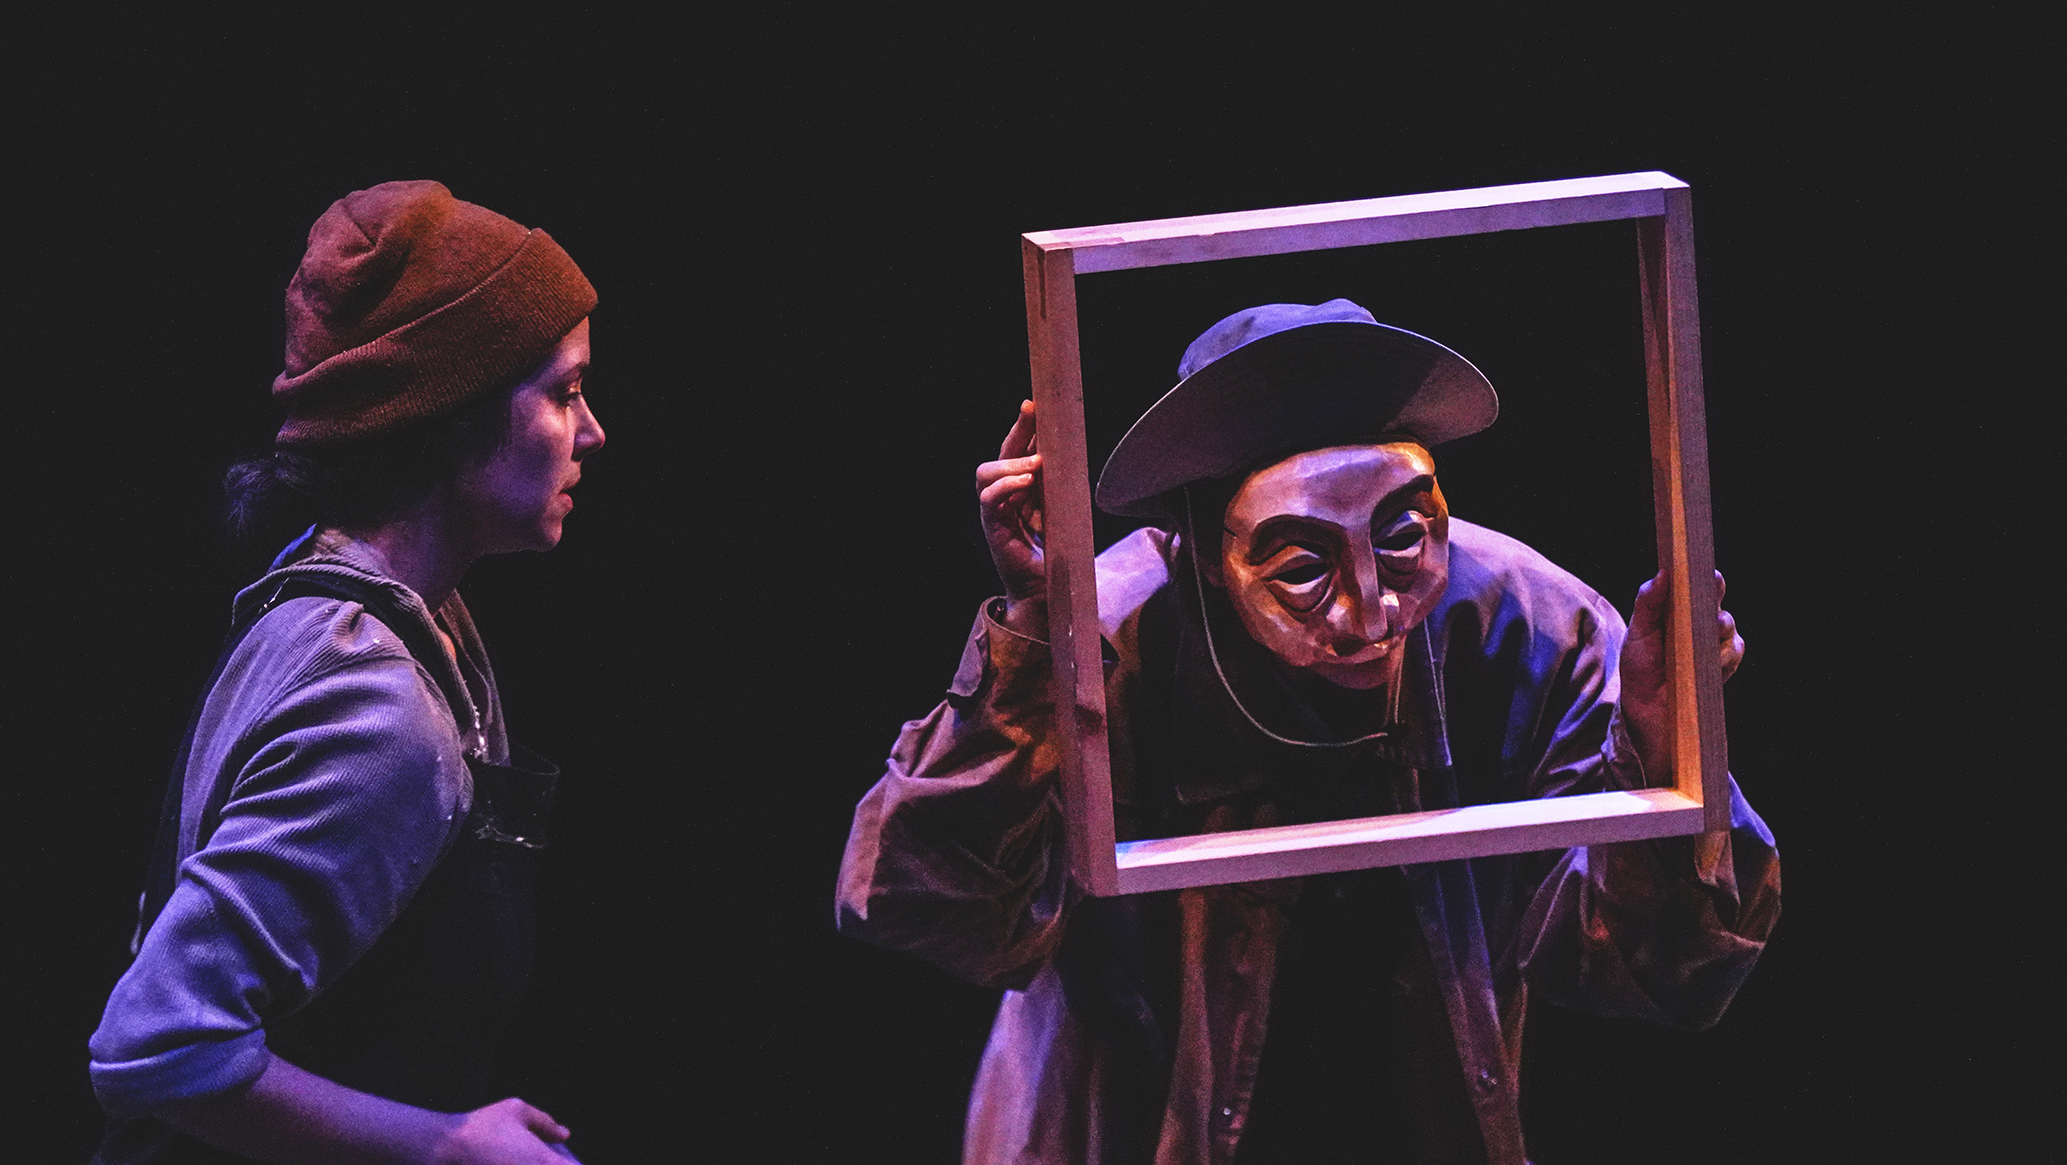 two performers onstage light by purple light. one performer is holding an empty picture frame.